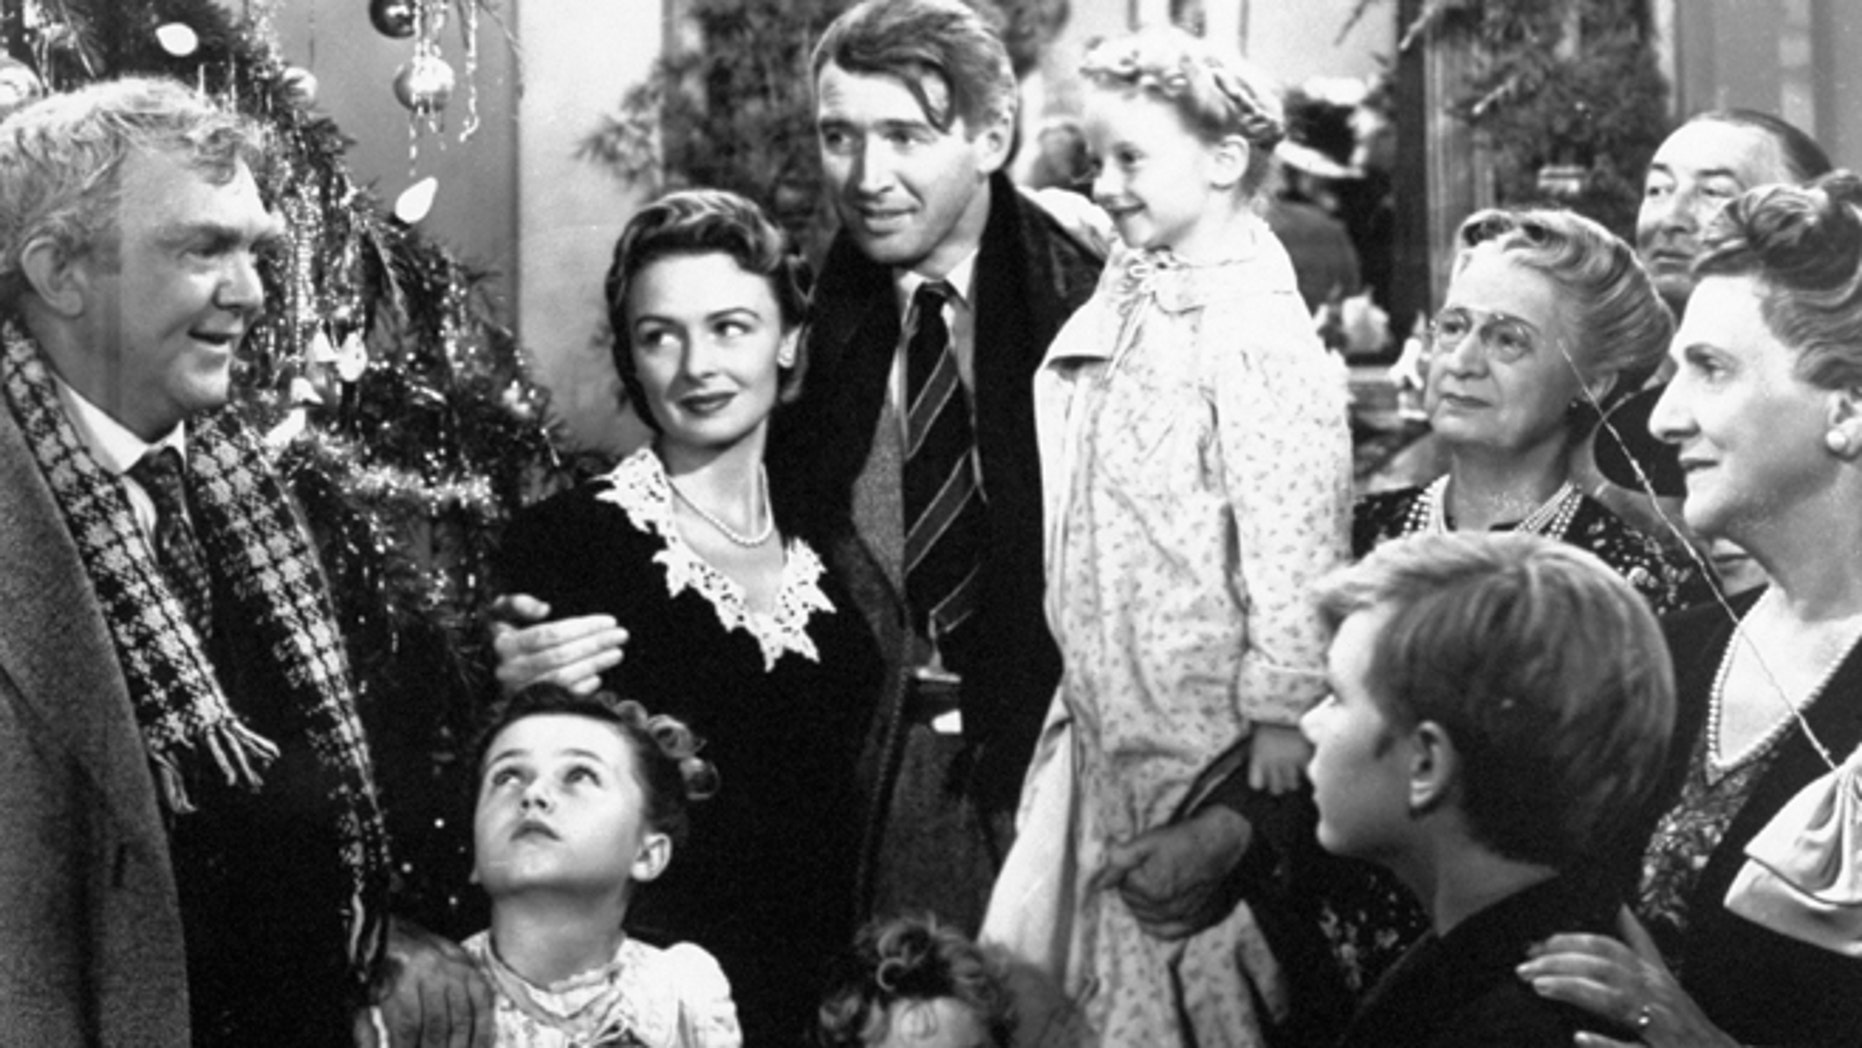 """In this 1946 file photo originally provided by RKO Pictures Inc., legendary actor James Stewart as George Bailey, center, is reunited with his wife played by actress Donna Reed, third from left, and family during the last scene of Frank Capra's """"It's A Wonderful Life."""""""